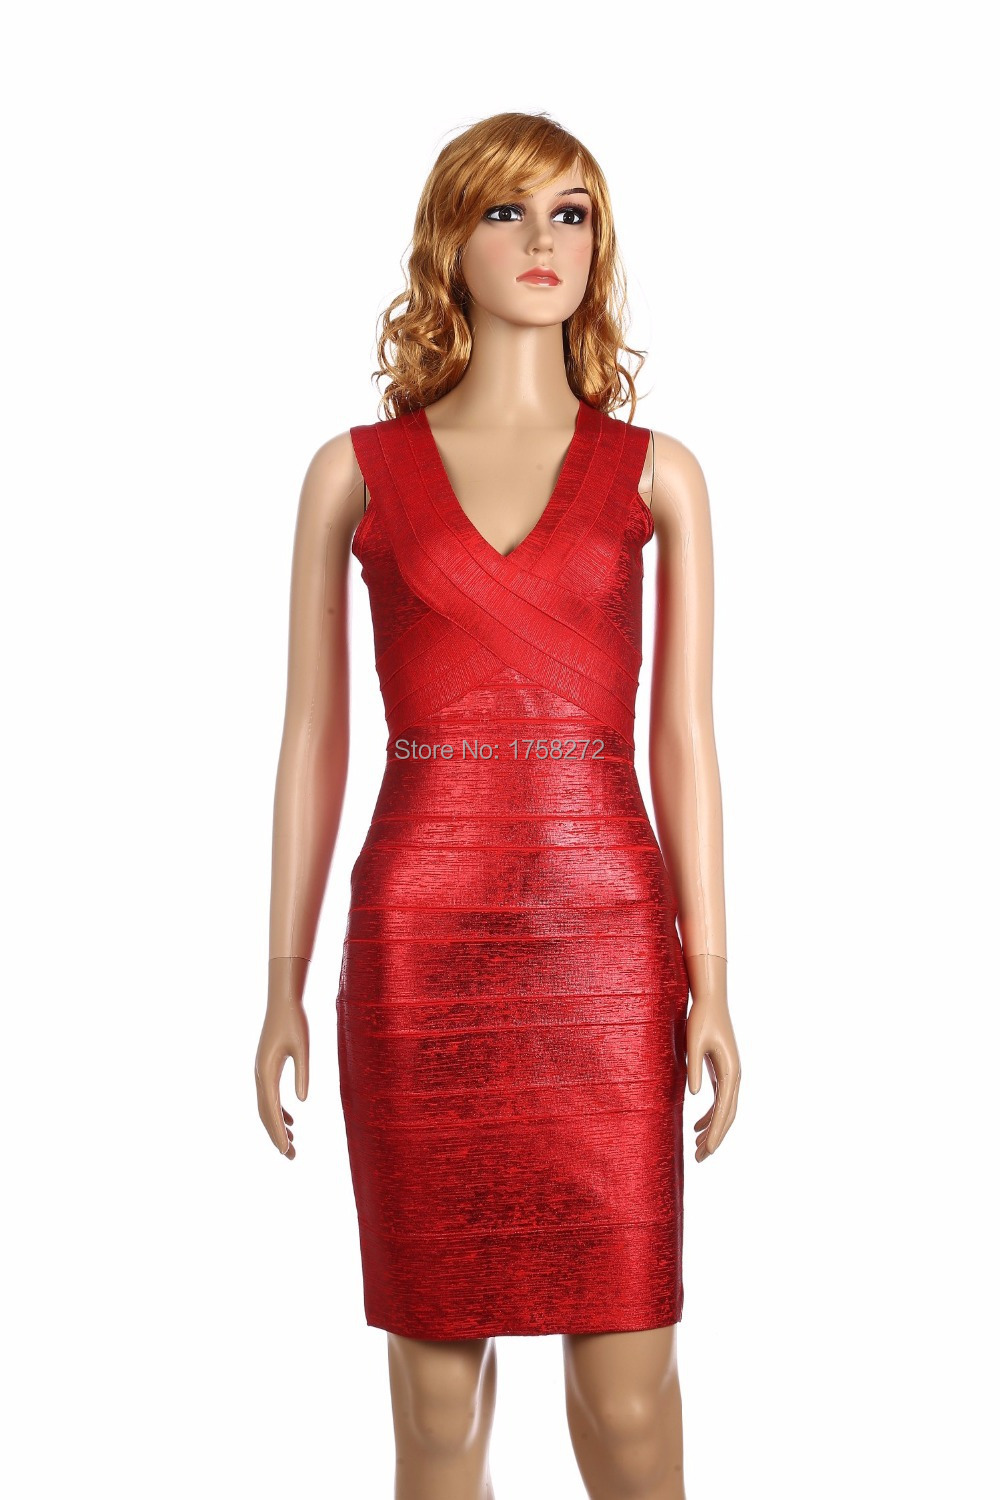 Free Shipping stock clearance Women's Summer Dress Girls Party Fancy Dresses-in ...